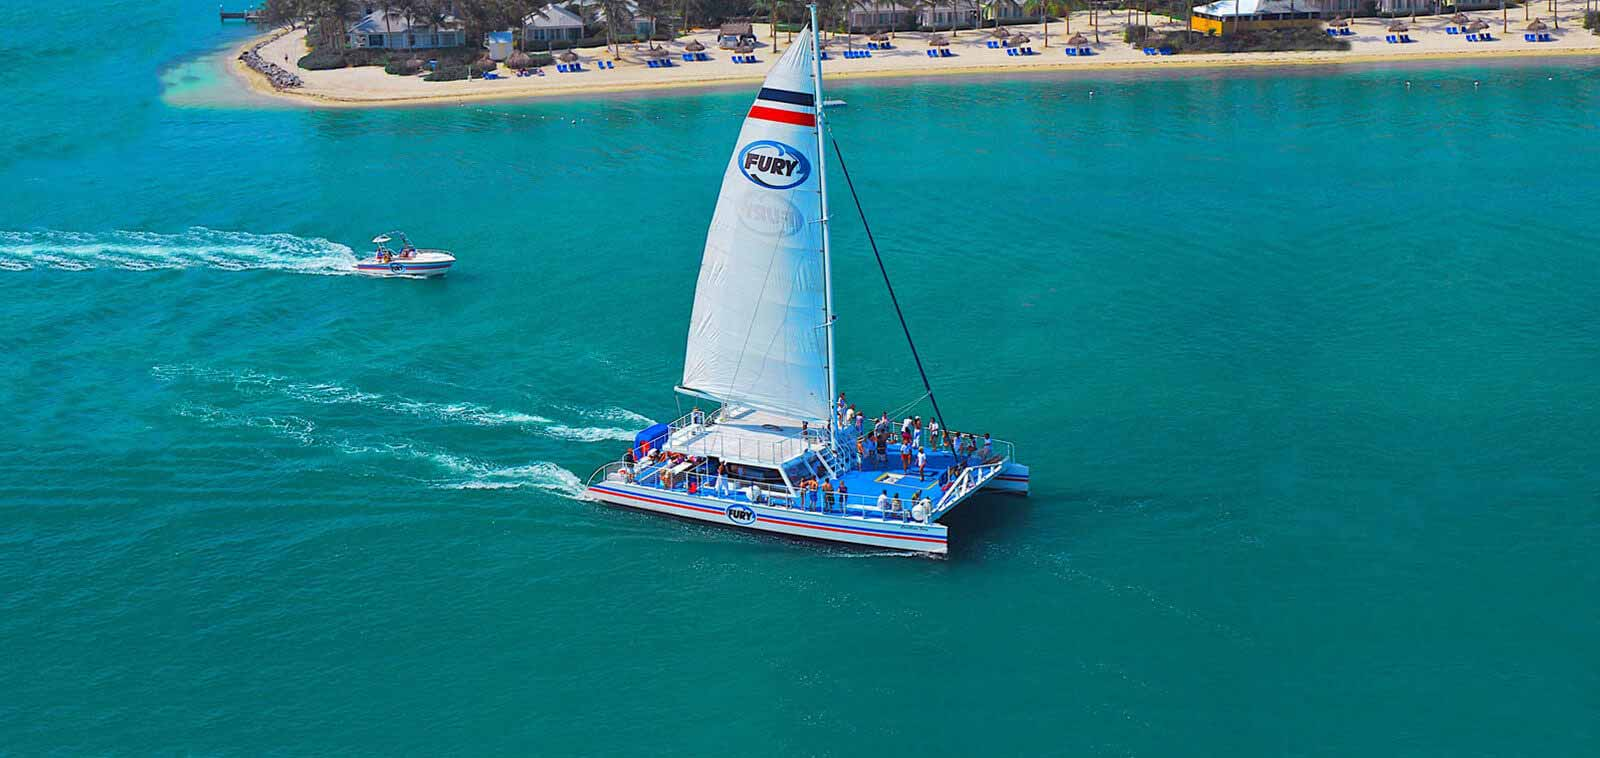 Key West Watersports Adventure on Fury Catamaran